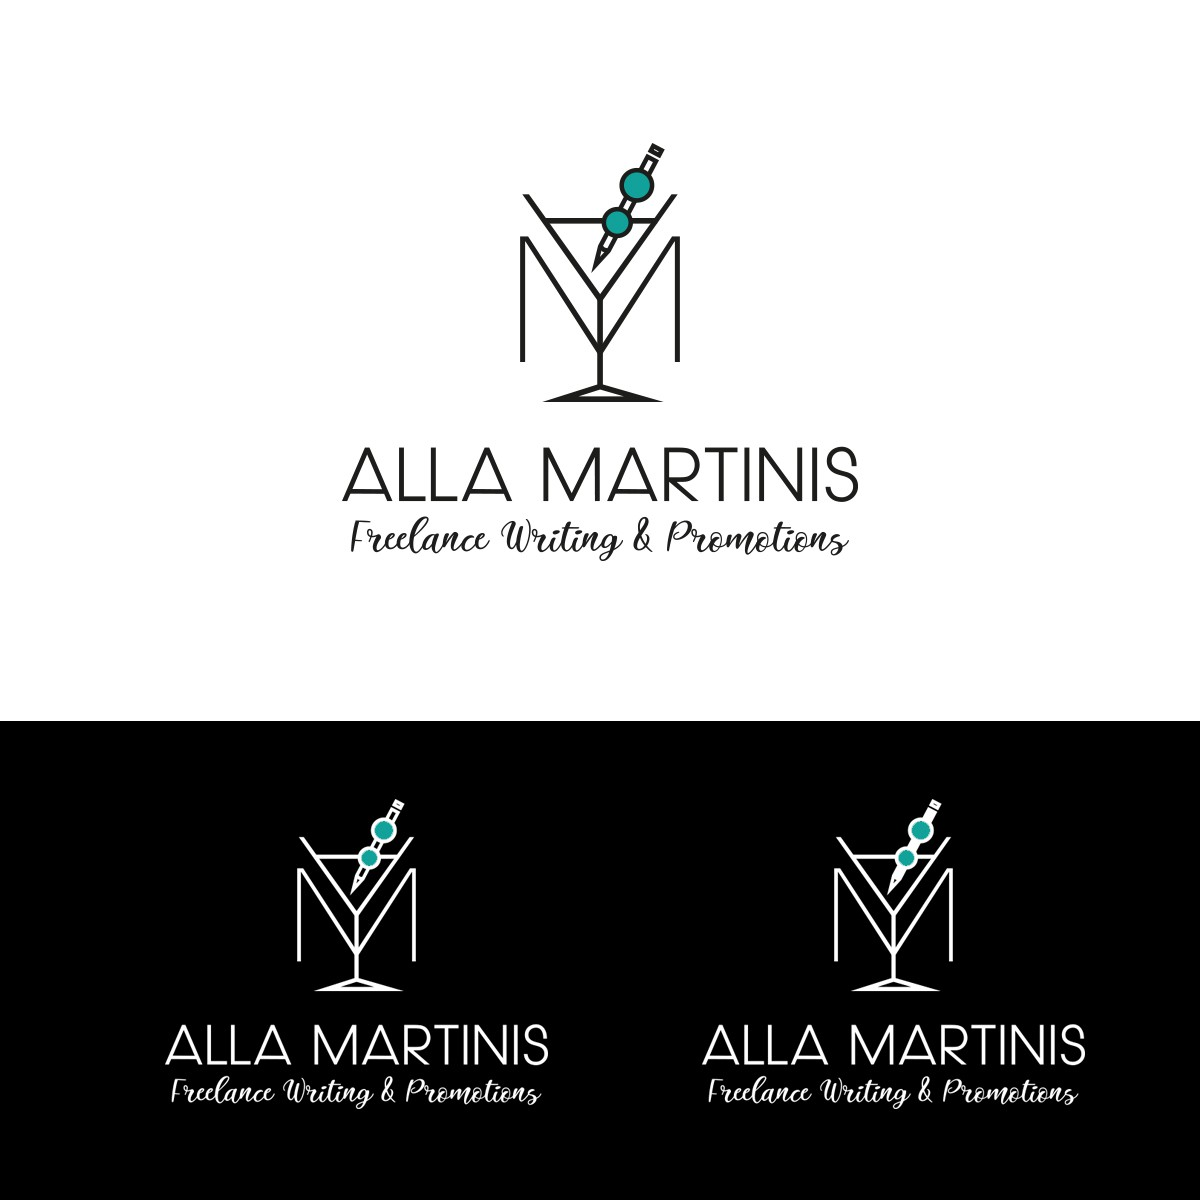 Alla Martinis -- we're two freelance writers with Italian last names. Make us a cool logo!